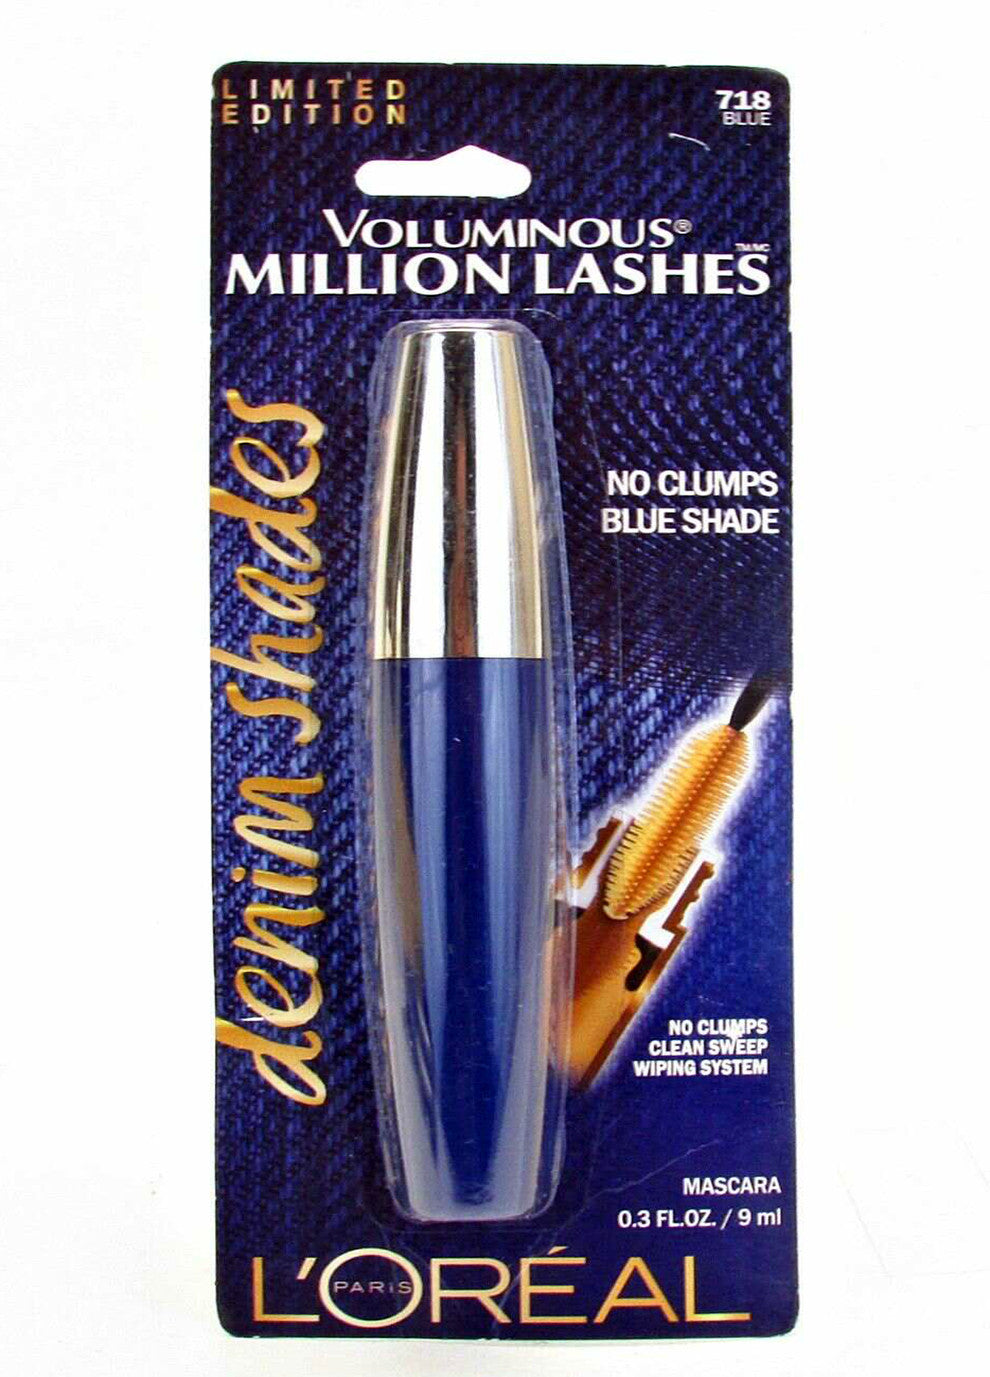 Loreal Limited Edition Voluminous Million Lashes Denim Shades Mascara # 718 Blue